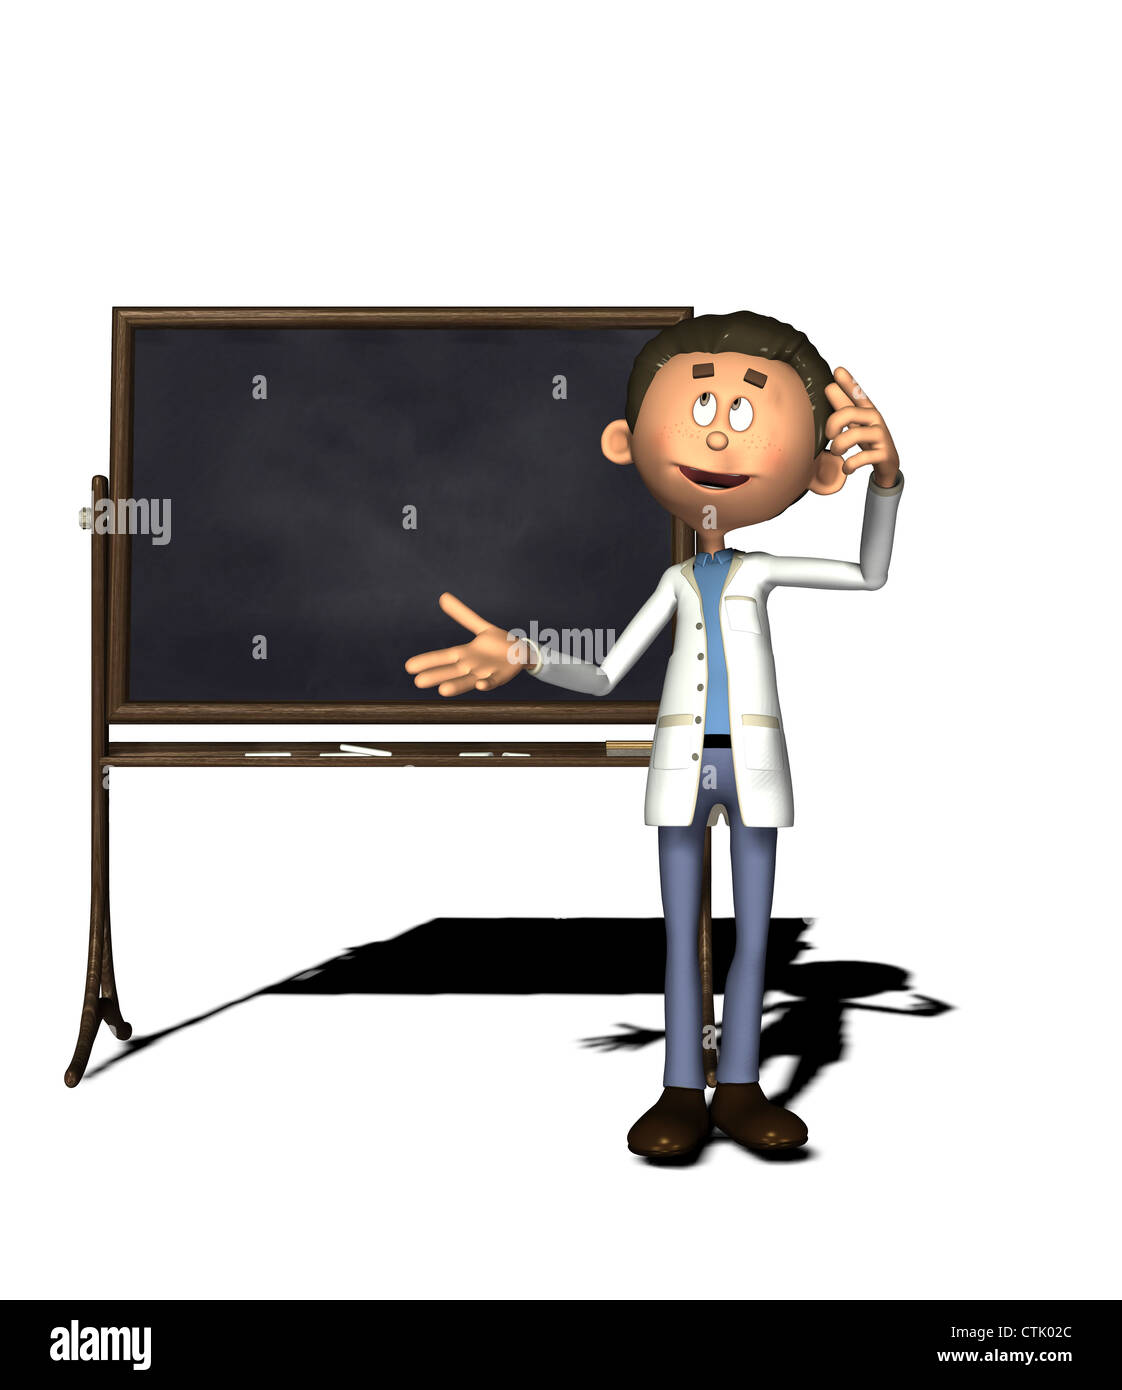 Cartoon-Figur-Chemiker mit board Stockfoto